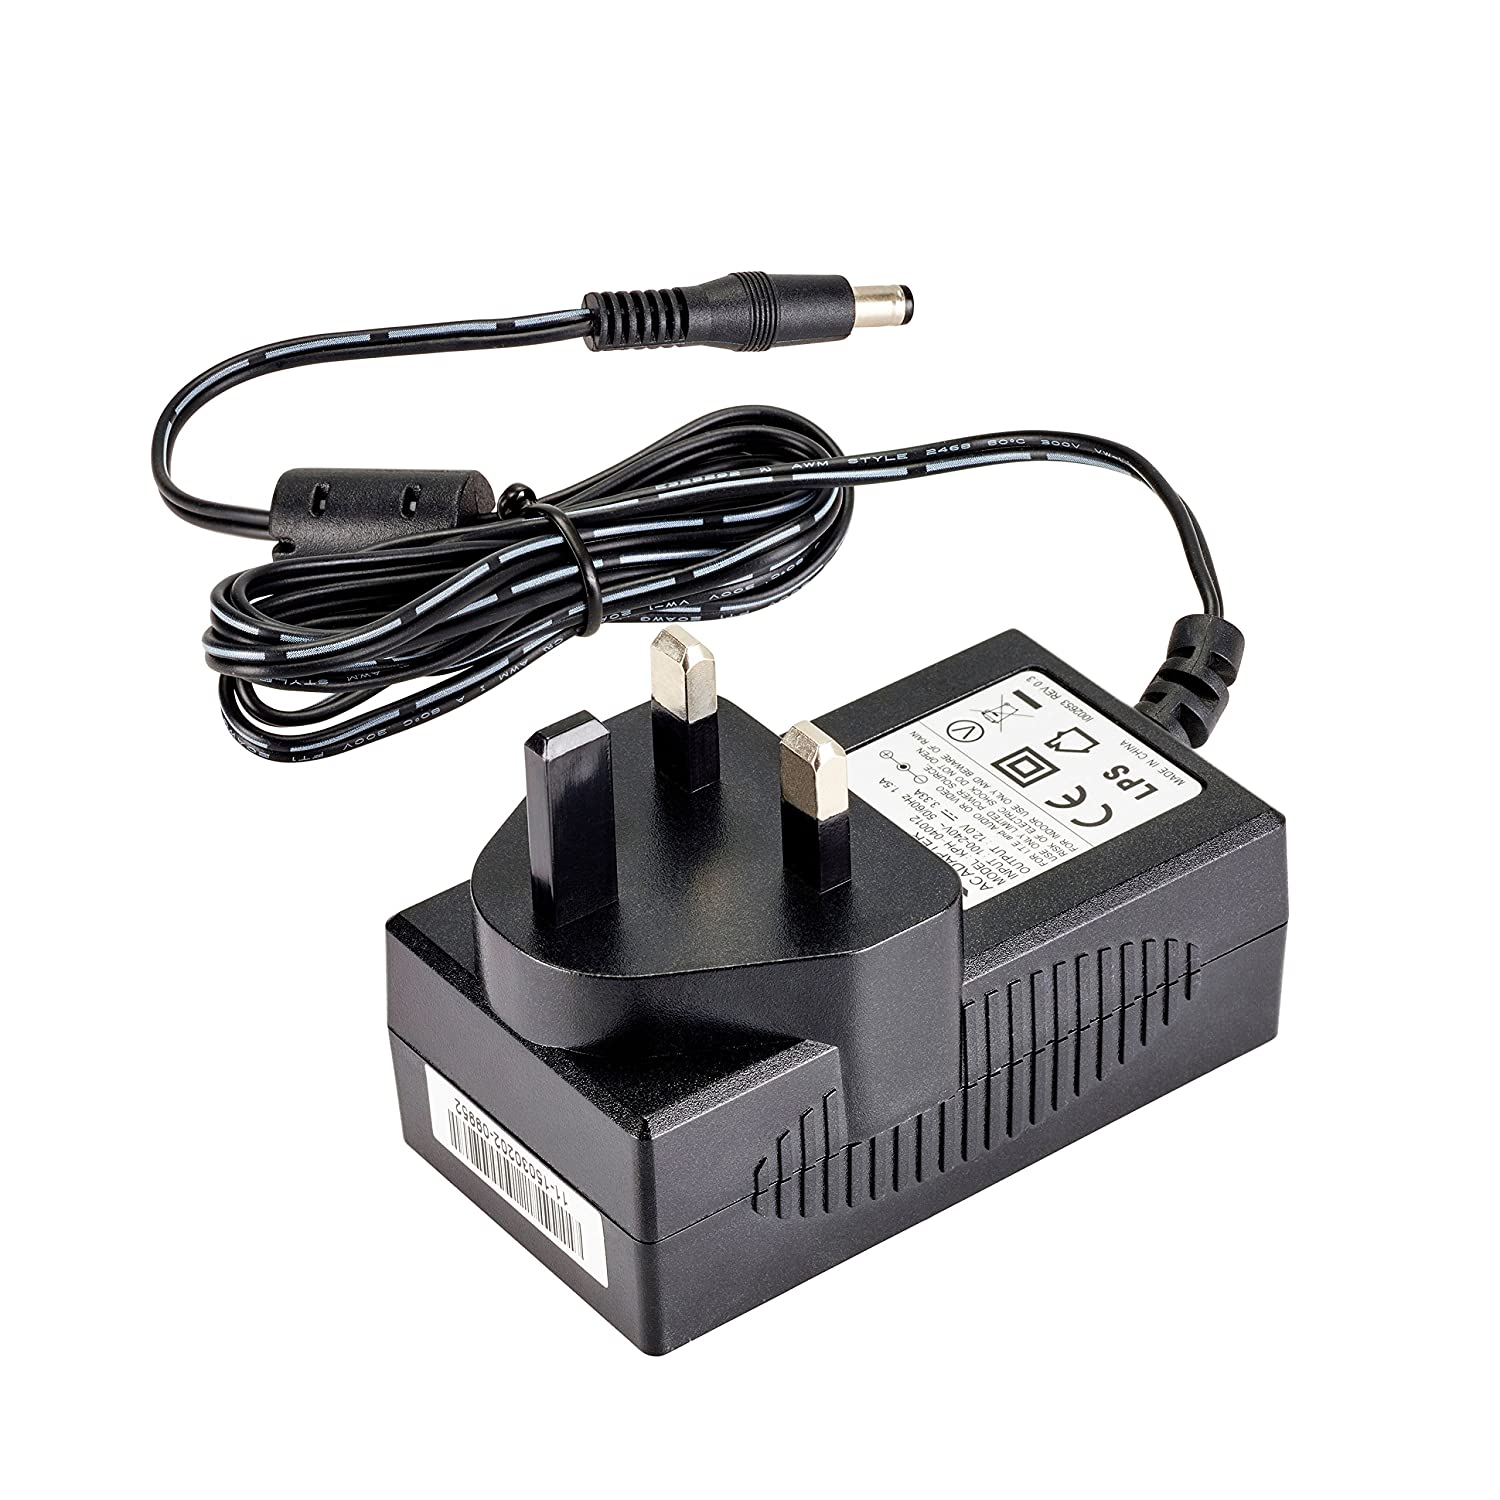 12v Mains 3a 36w ac/dc replacement power PSU for PURE Contour 100Di iPhone dock with UK mains cable and plug DTDC002